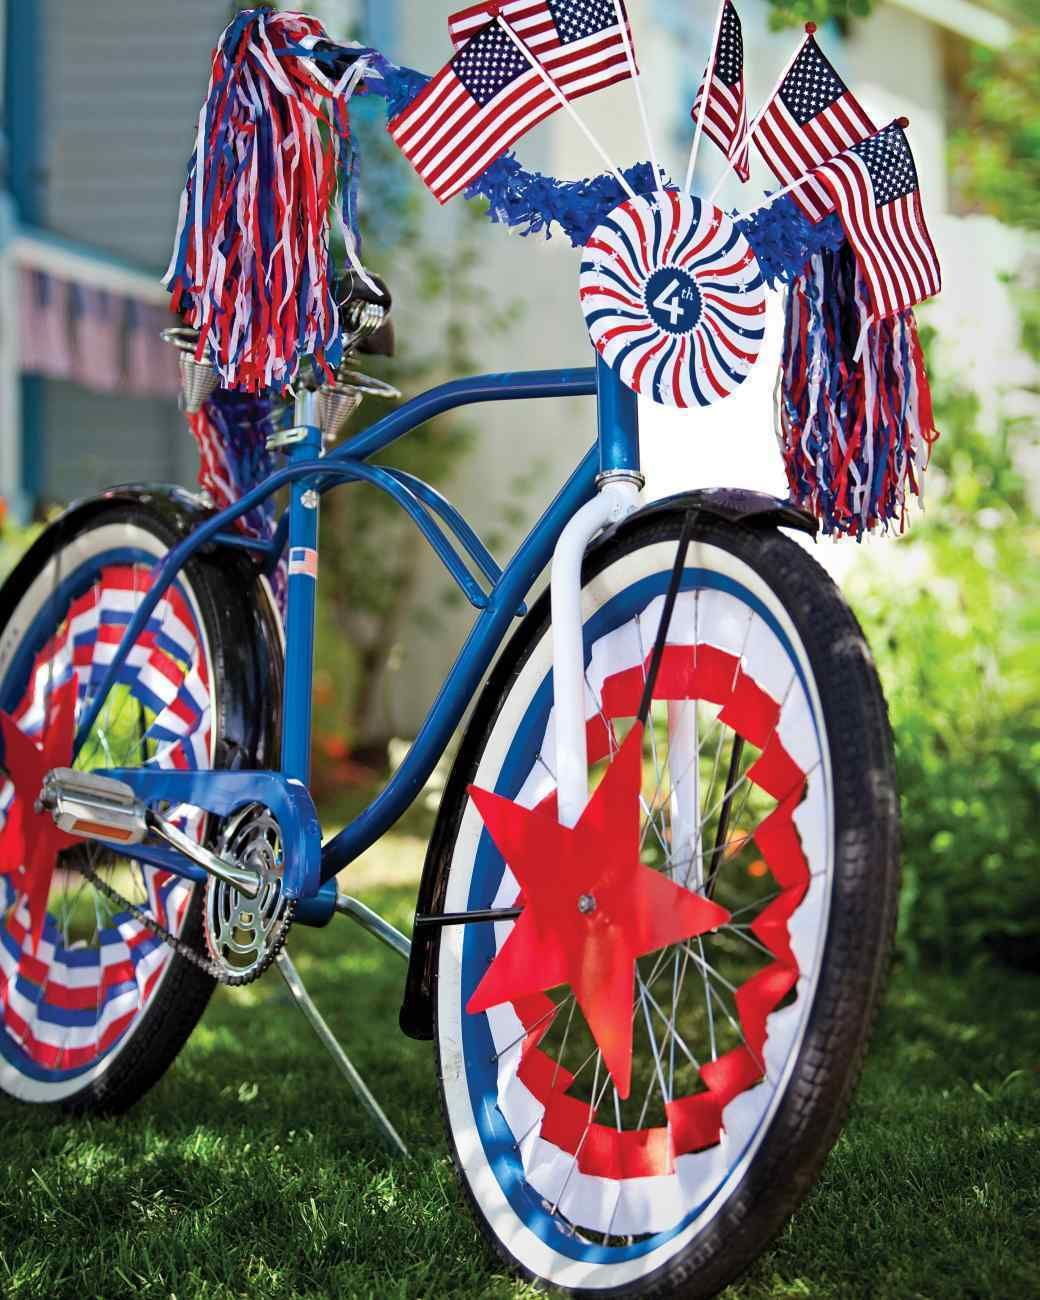 25 Patriotic Ideas For Celebrating 4th July In Style. - http://www.lifebuzz.com/july4th-diy/